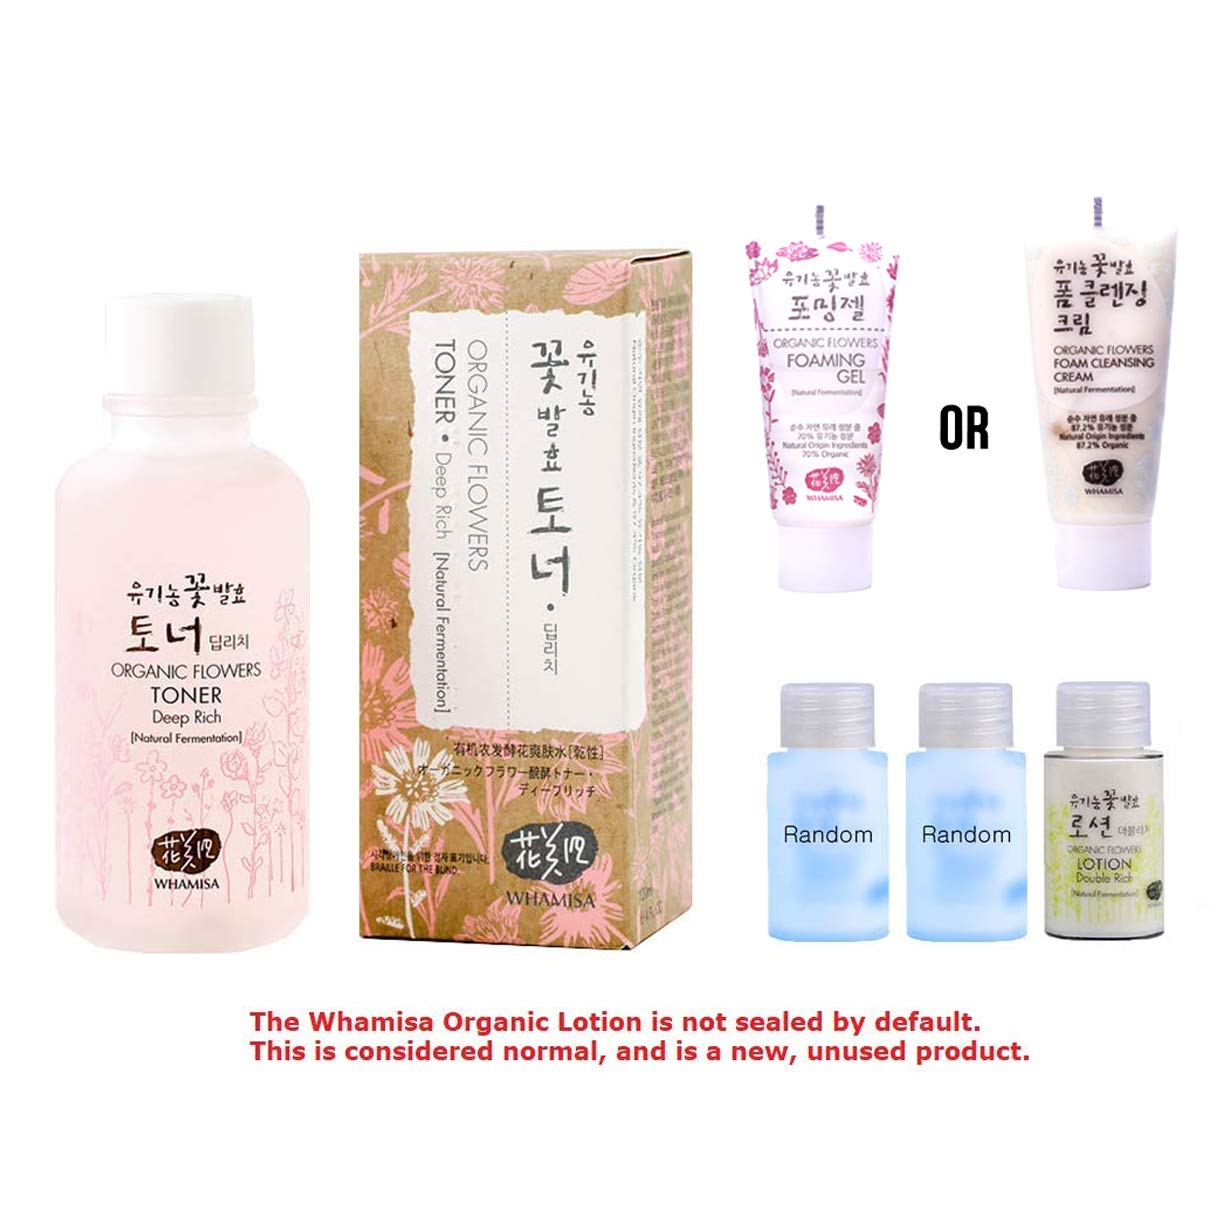 Whamisa [ Korean Skin Care Kit ] Organic Flowers Deep Rich Essence Toner 120ml / Double Rich Lotion 20ml / Cleansing Foam 20ml and 2 more Organic Random Miniatures - Naturally fermented, EWG Verified by Whamisa